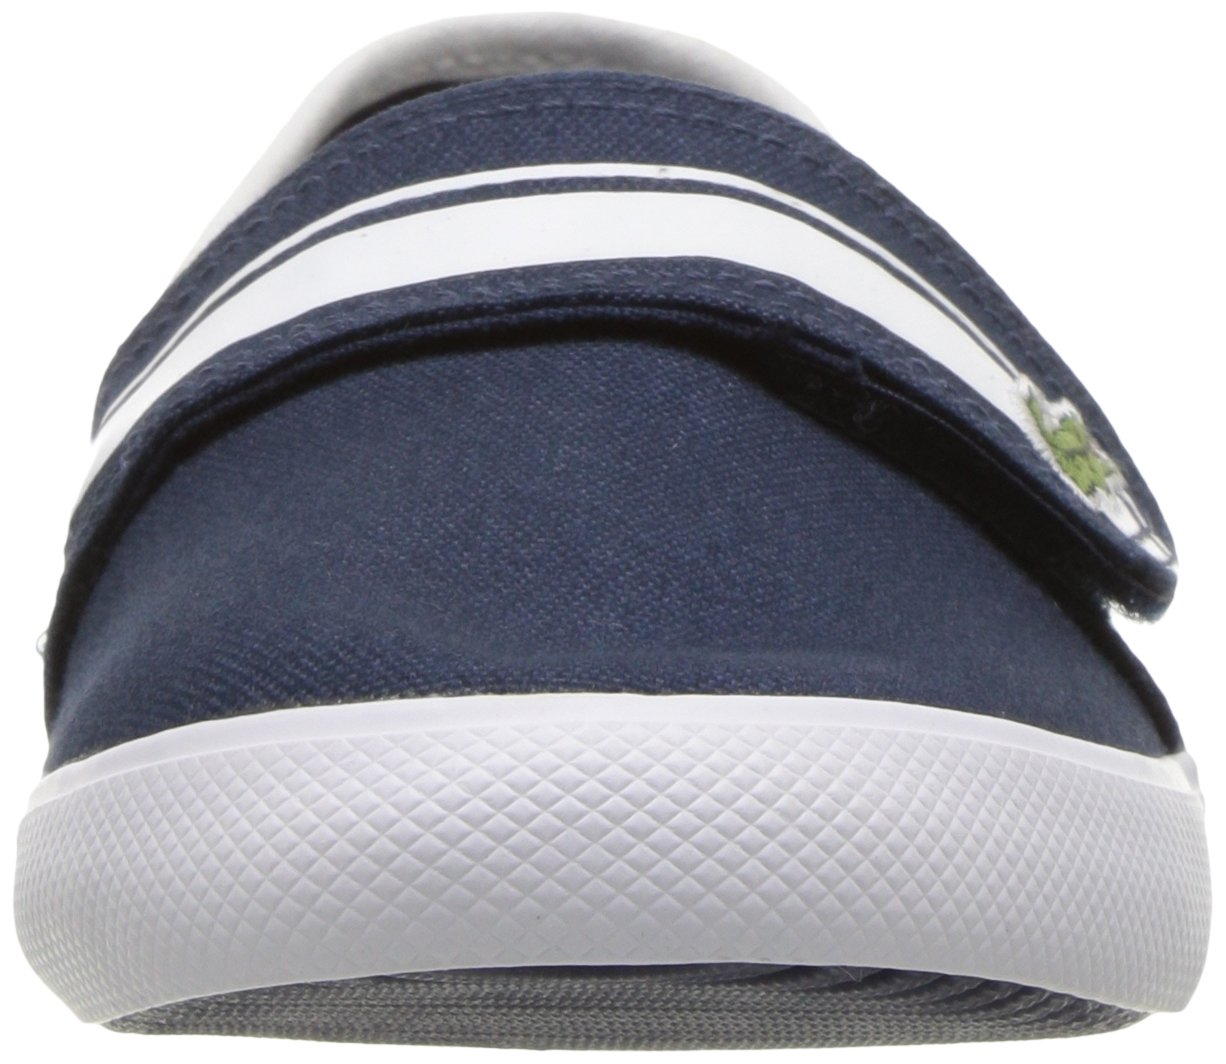 Lacoste Kids' Marice Slip-ONS,Navy/White Cotton Canvas,13. M US Little Kid by Lacoste (Image #4)